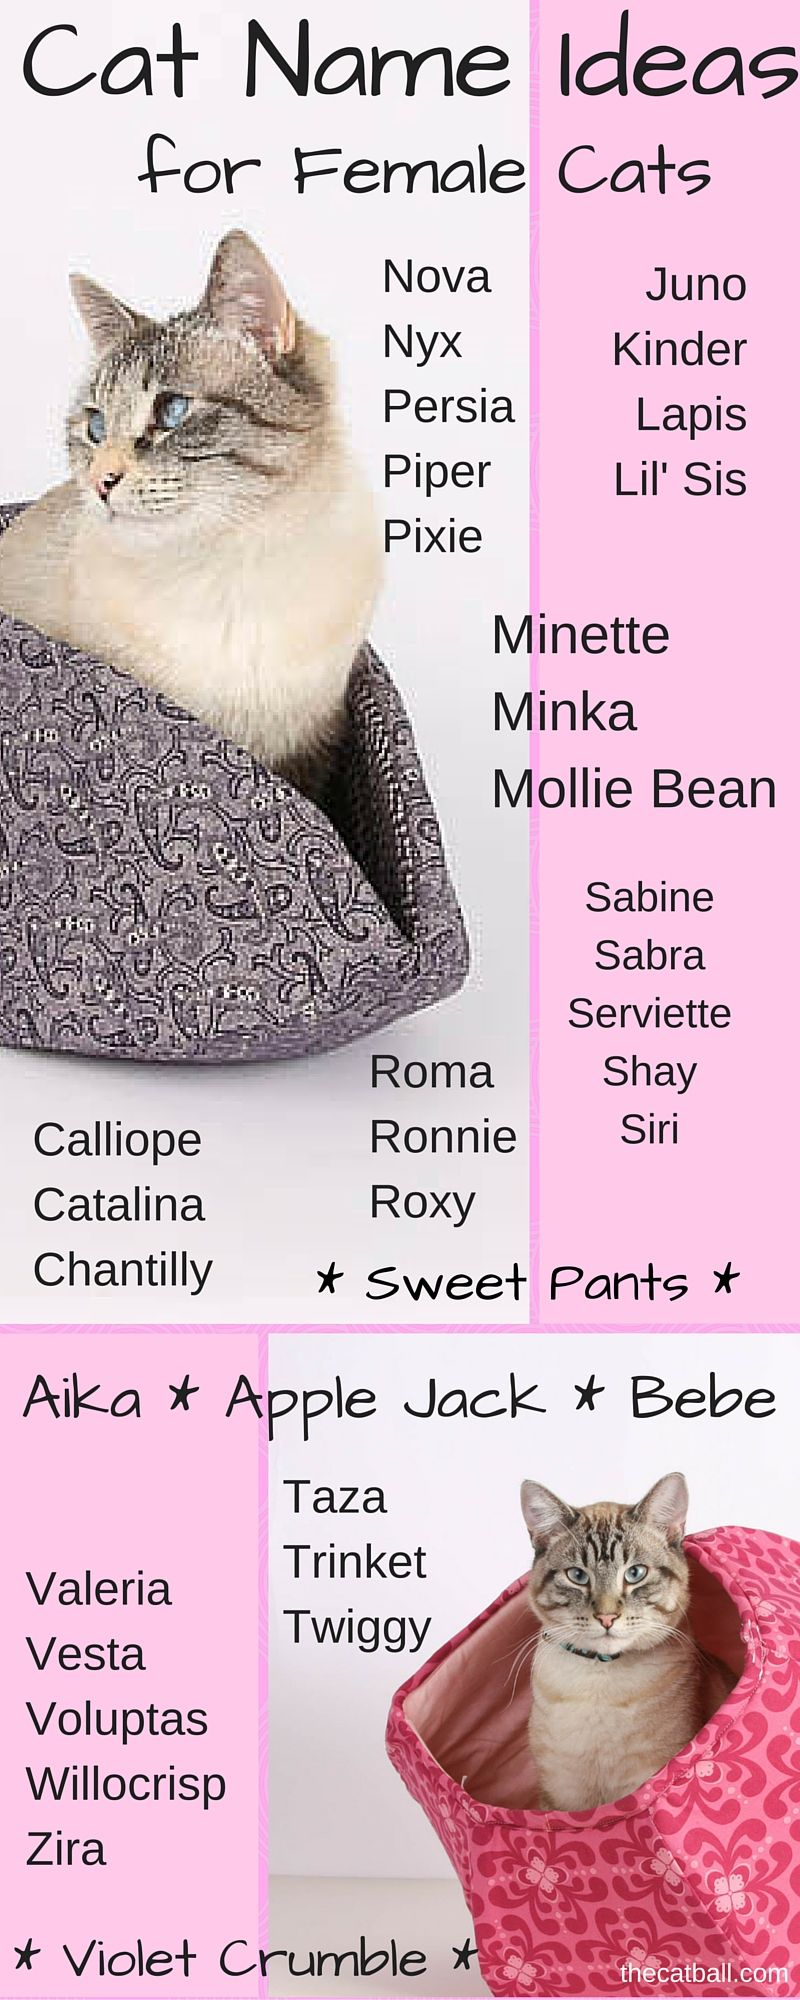 Cat Name Ideas For Female Cats Cat Names Kitten Names Cute Cat Names